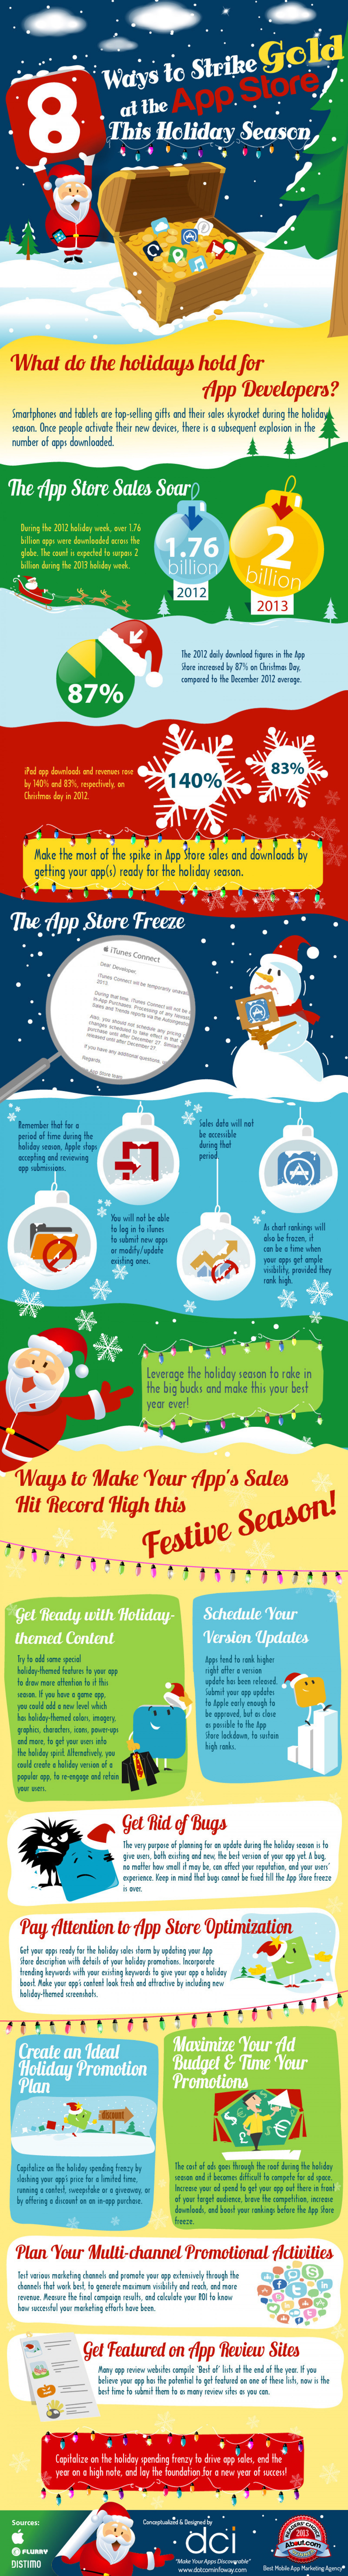 8 Ways to Strike Gold at the App Store This Holiday Season  Infographic